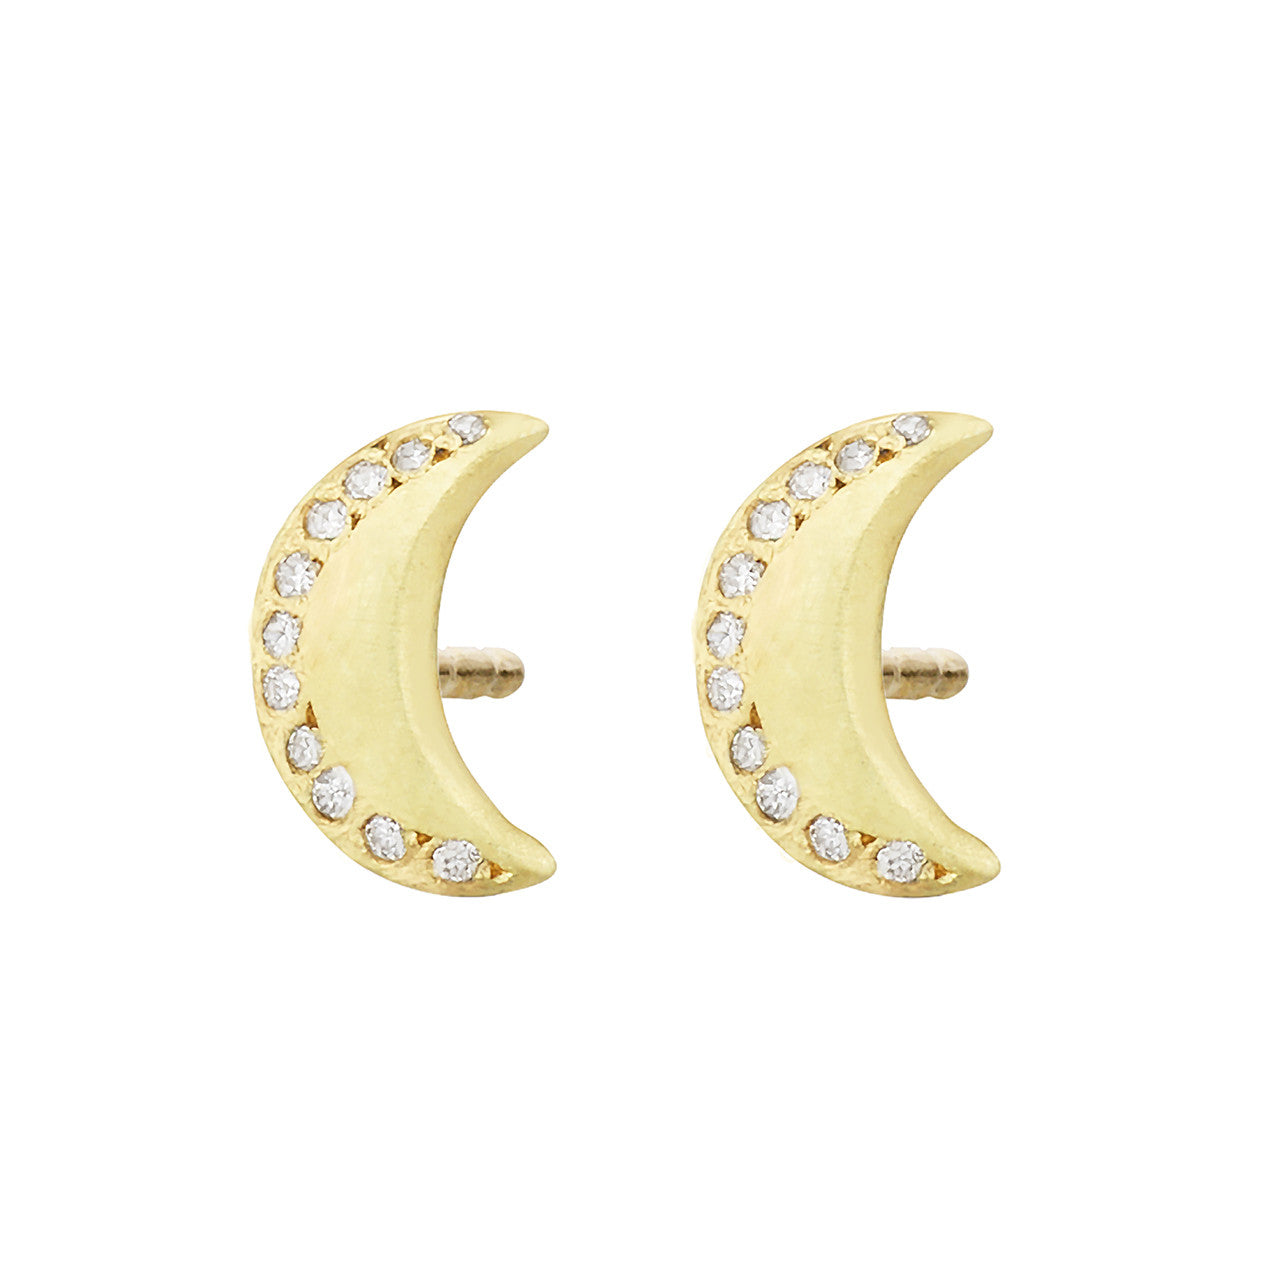 Queen of the Night Studs, White Diamond